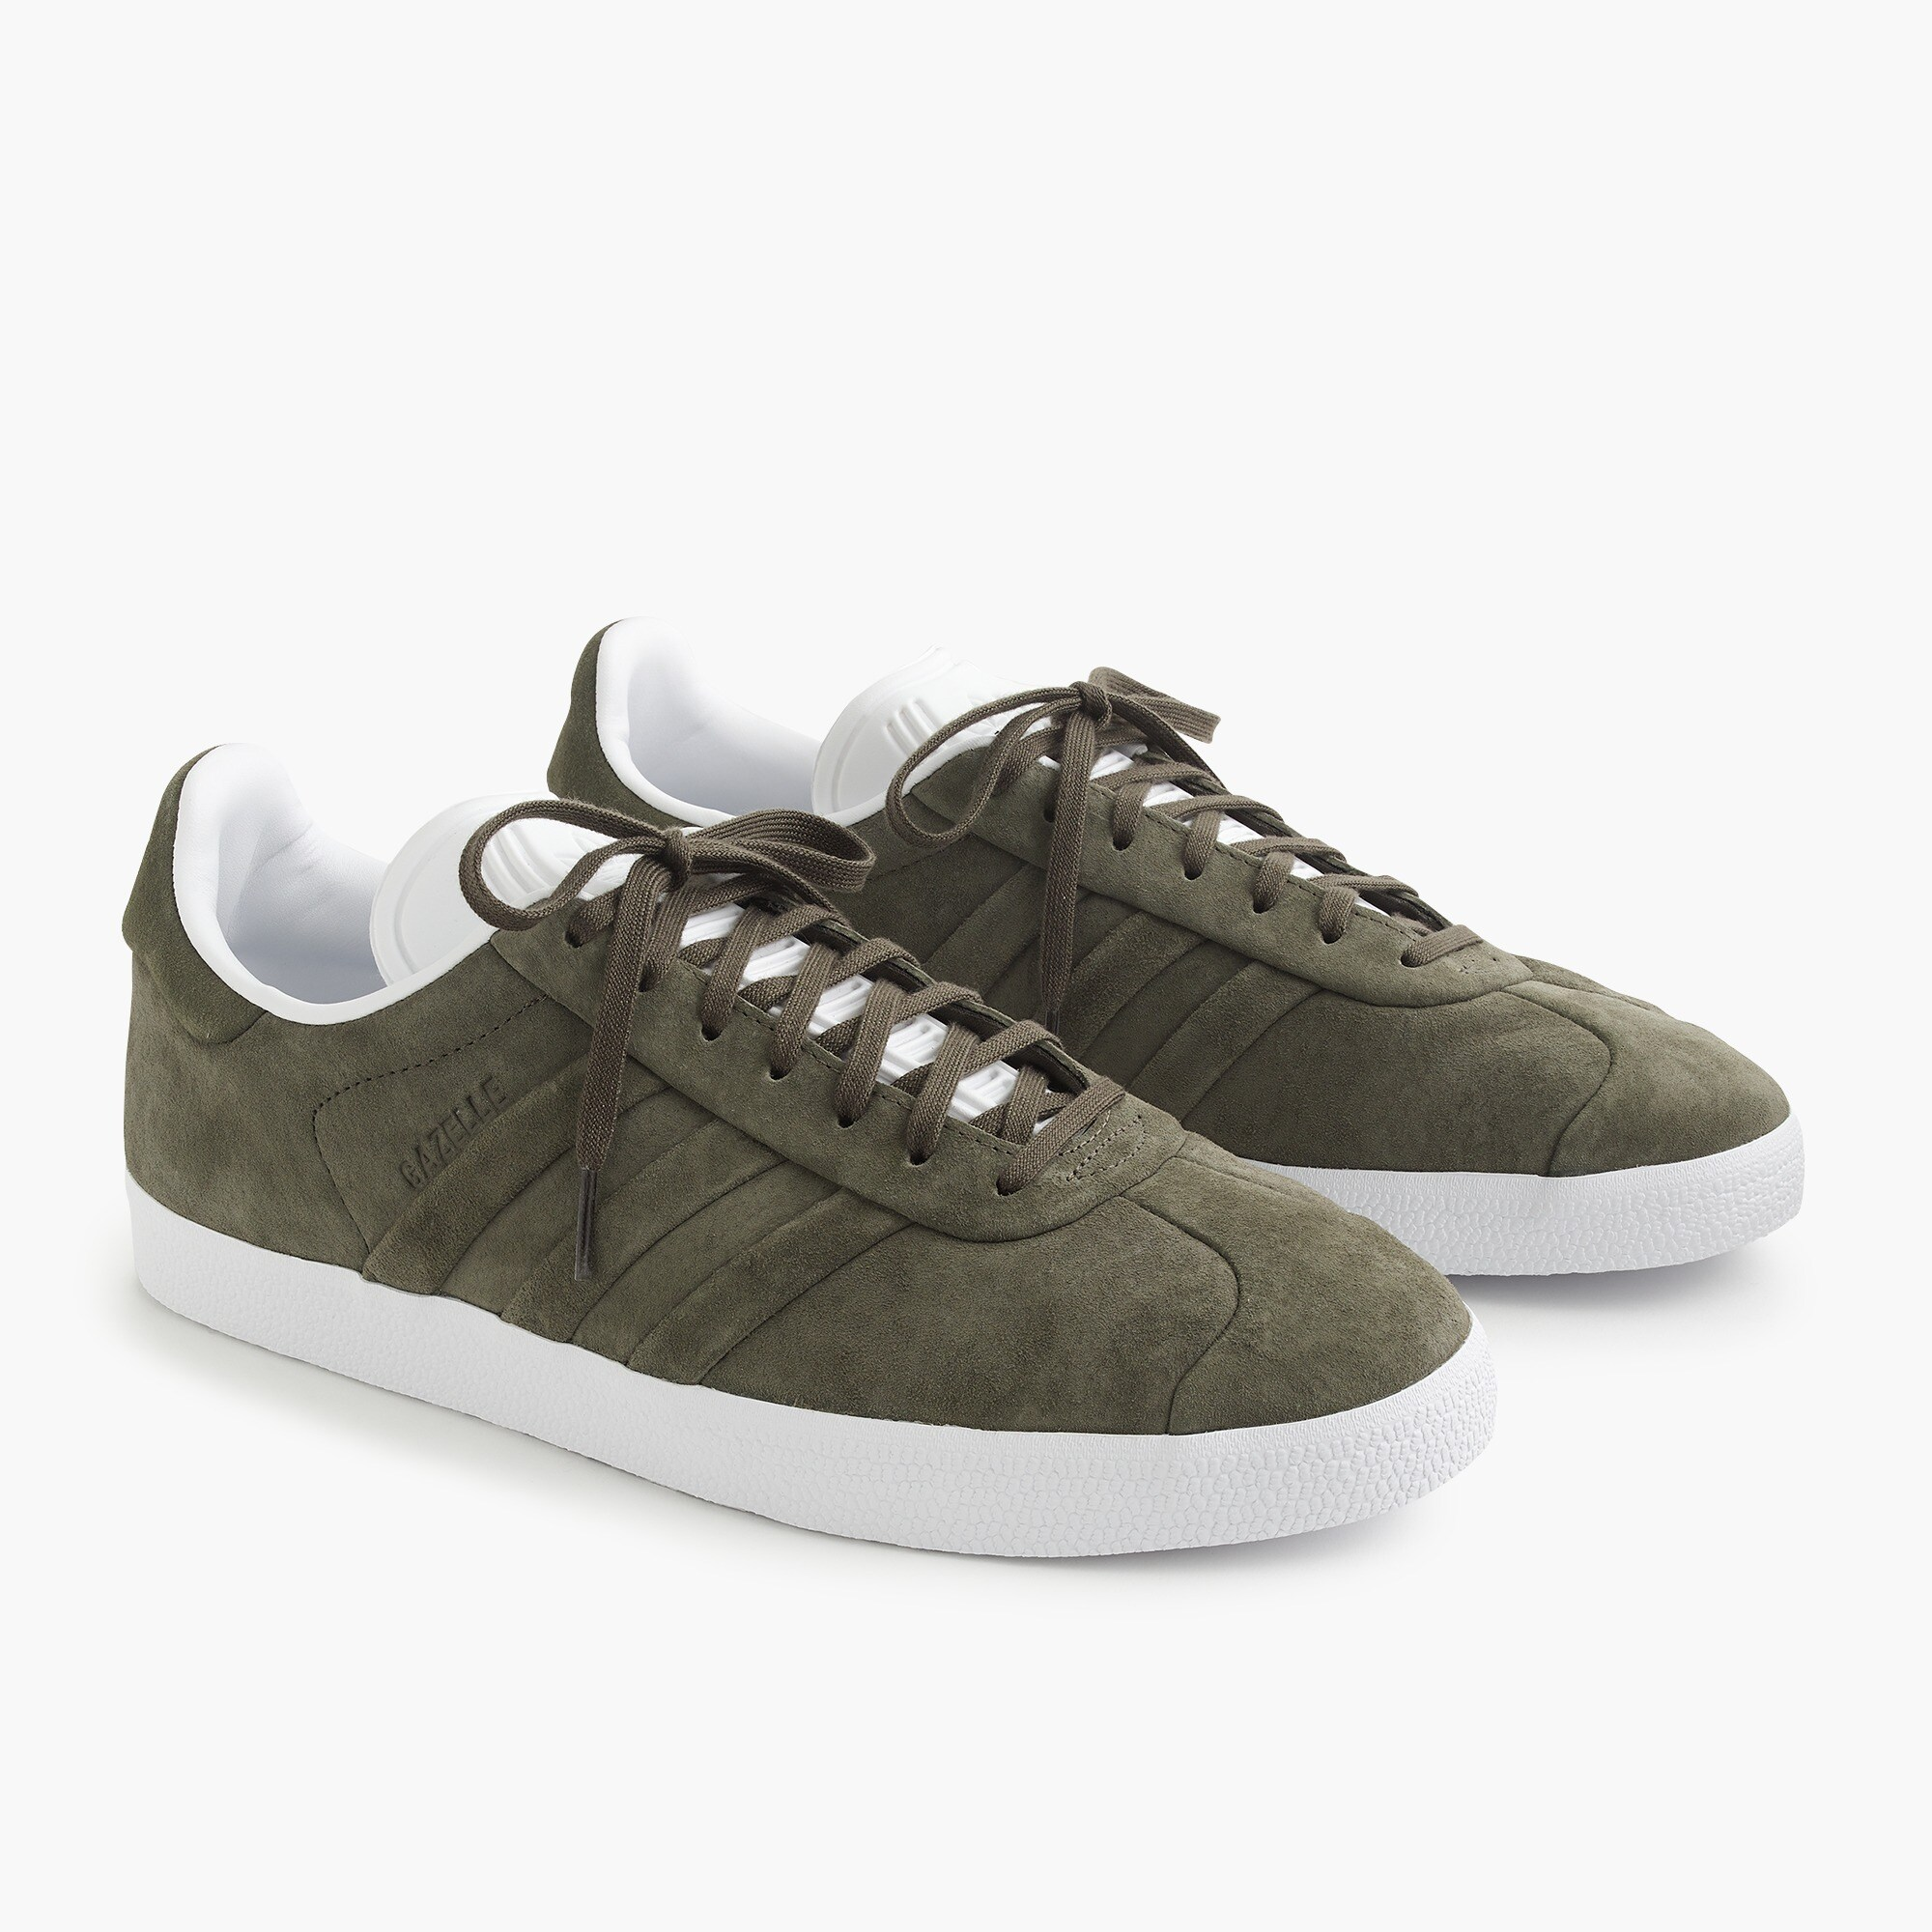 Adidas® Gazelle®sneakers in suede men j.crew in good company c